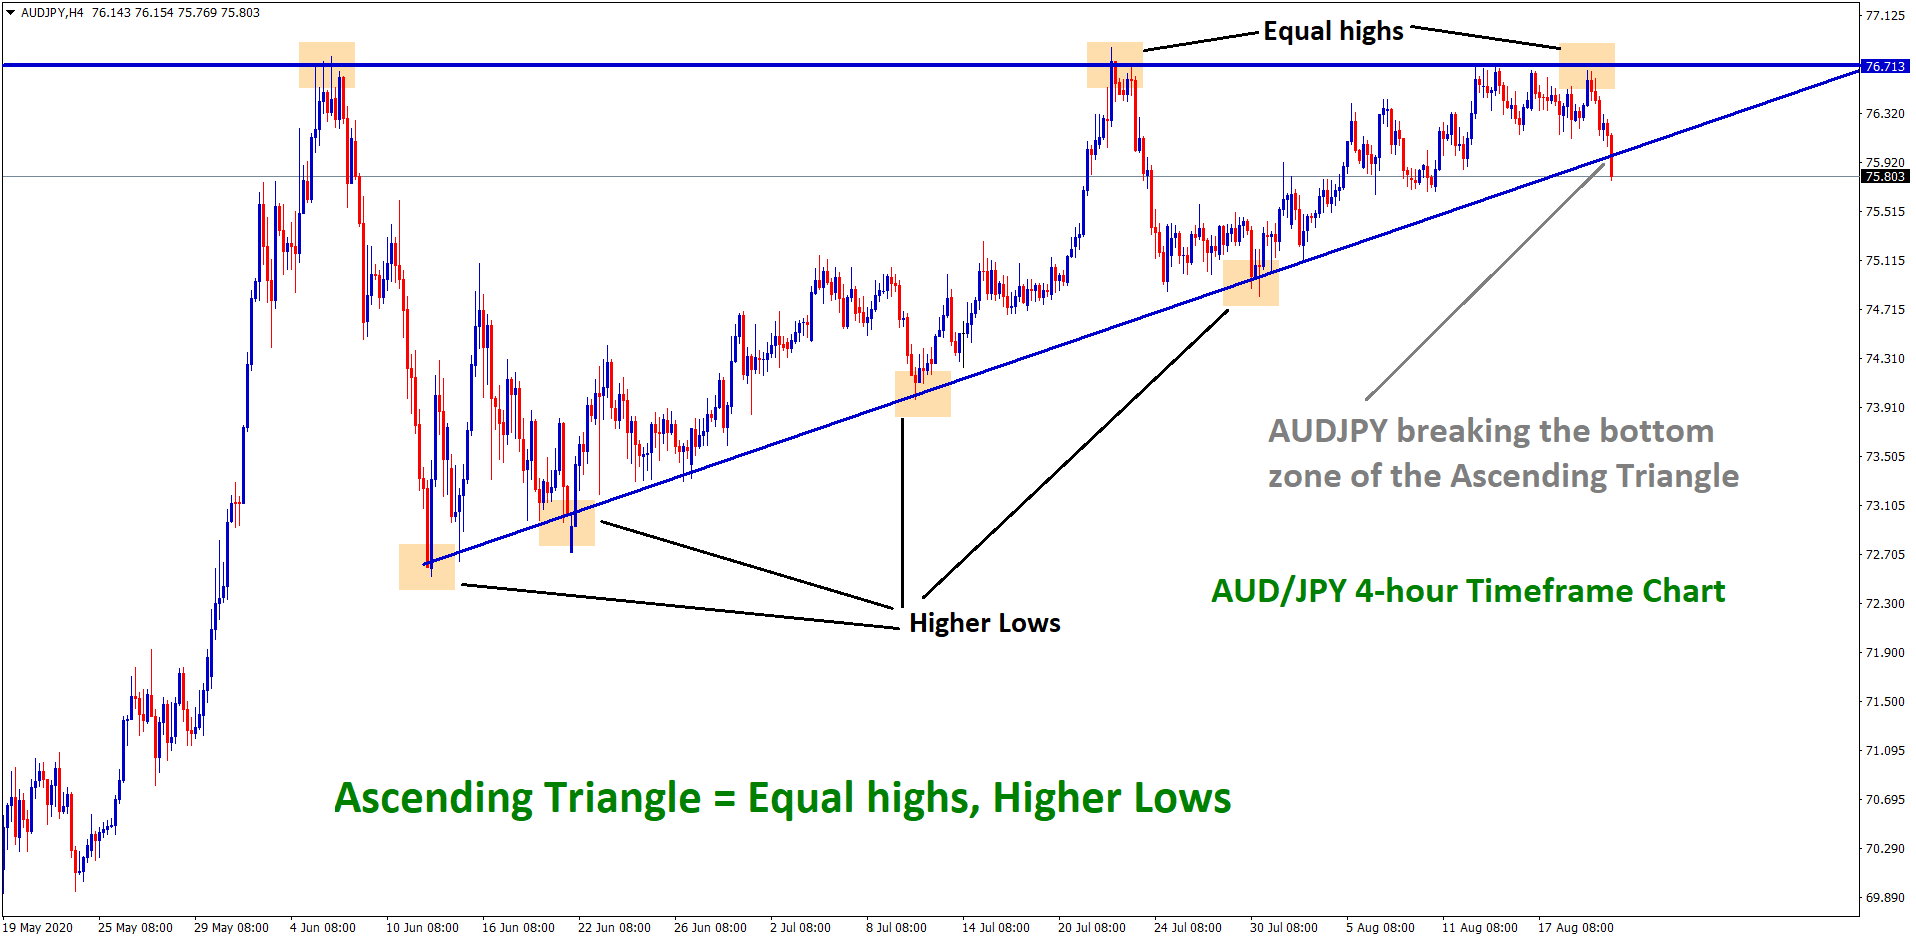 audjpy ascending triangle breakout at the bottom in h4 1